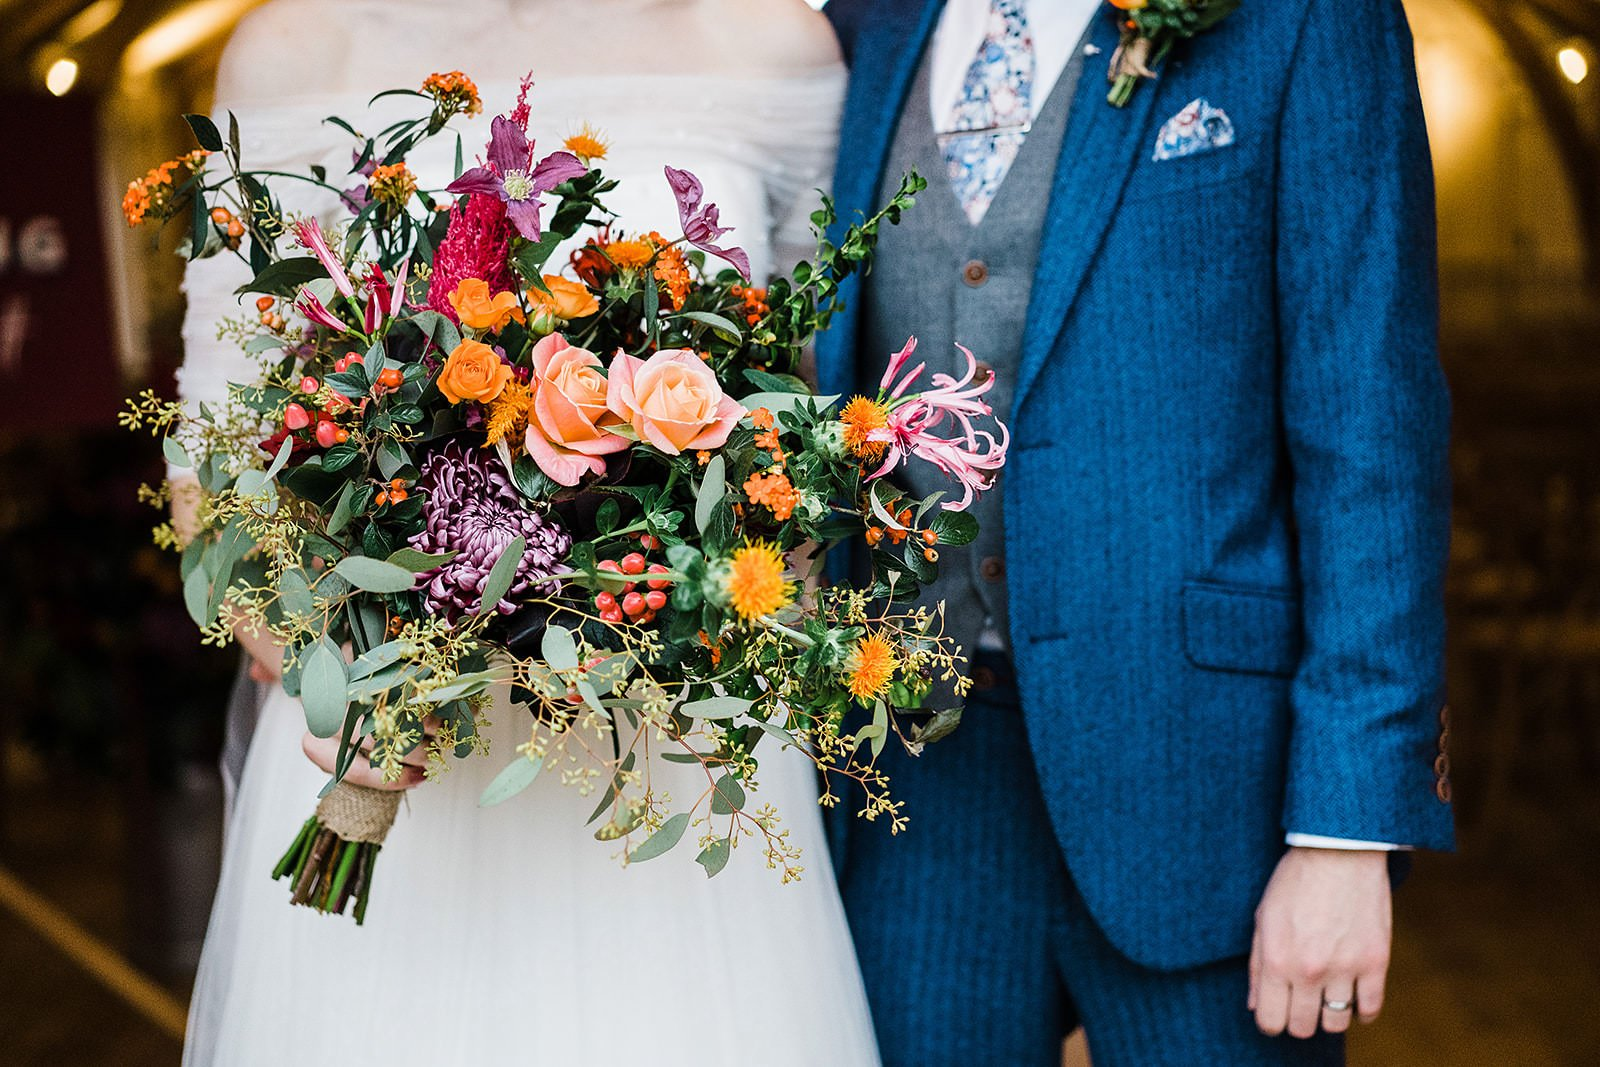 Martin and The Magpie wedding bouquet